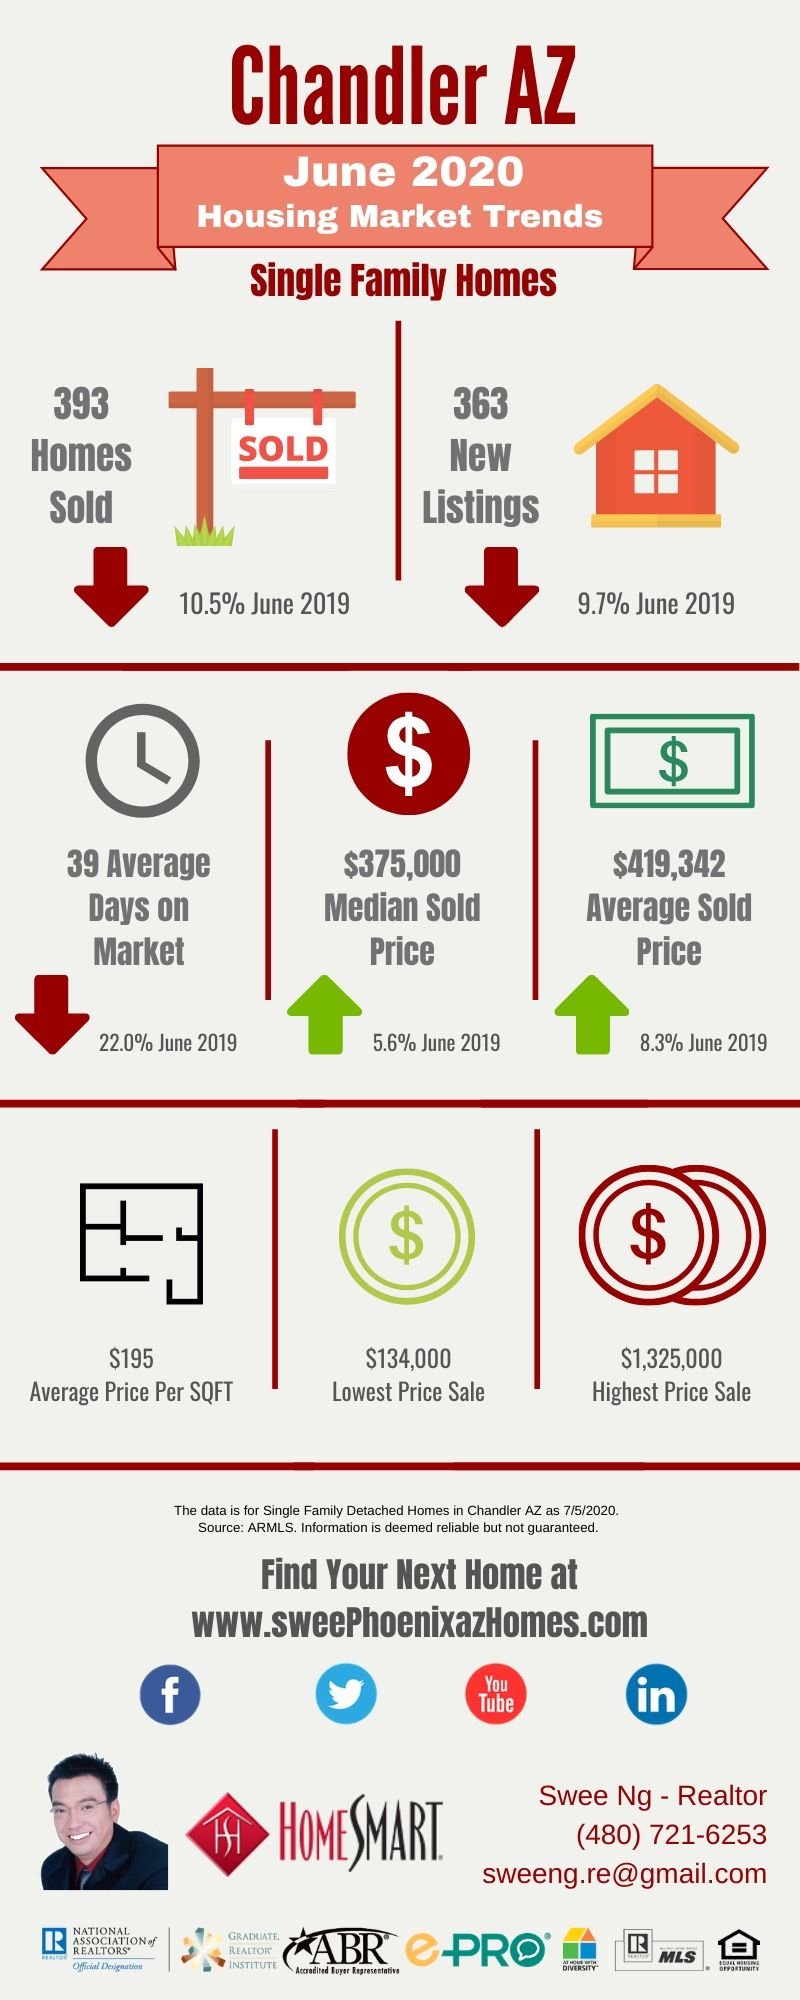 June 2020 Chandler AZ Housing Market Trends Report by Swee Ng, Real Estate and House Value